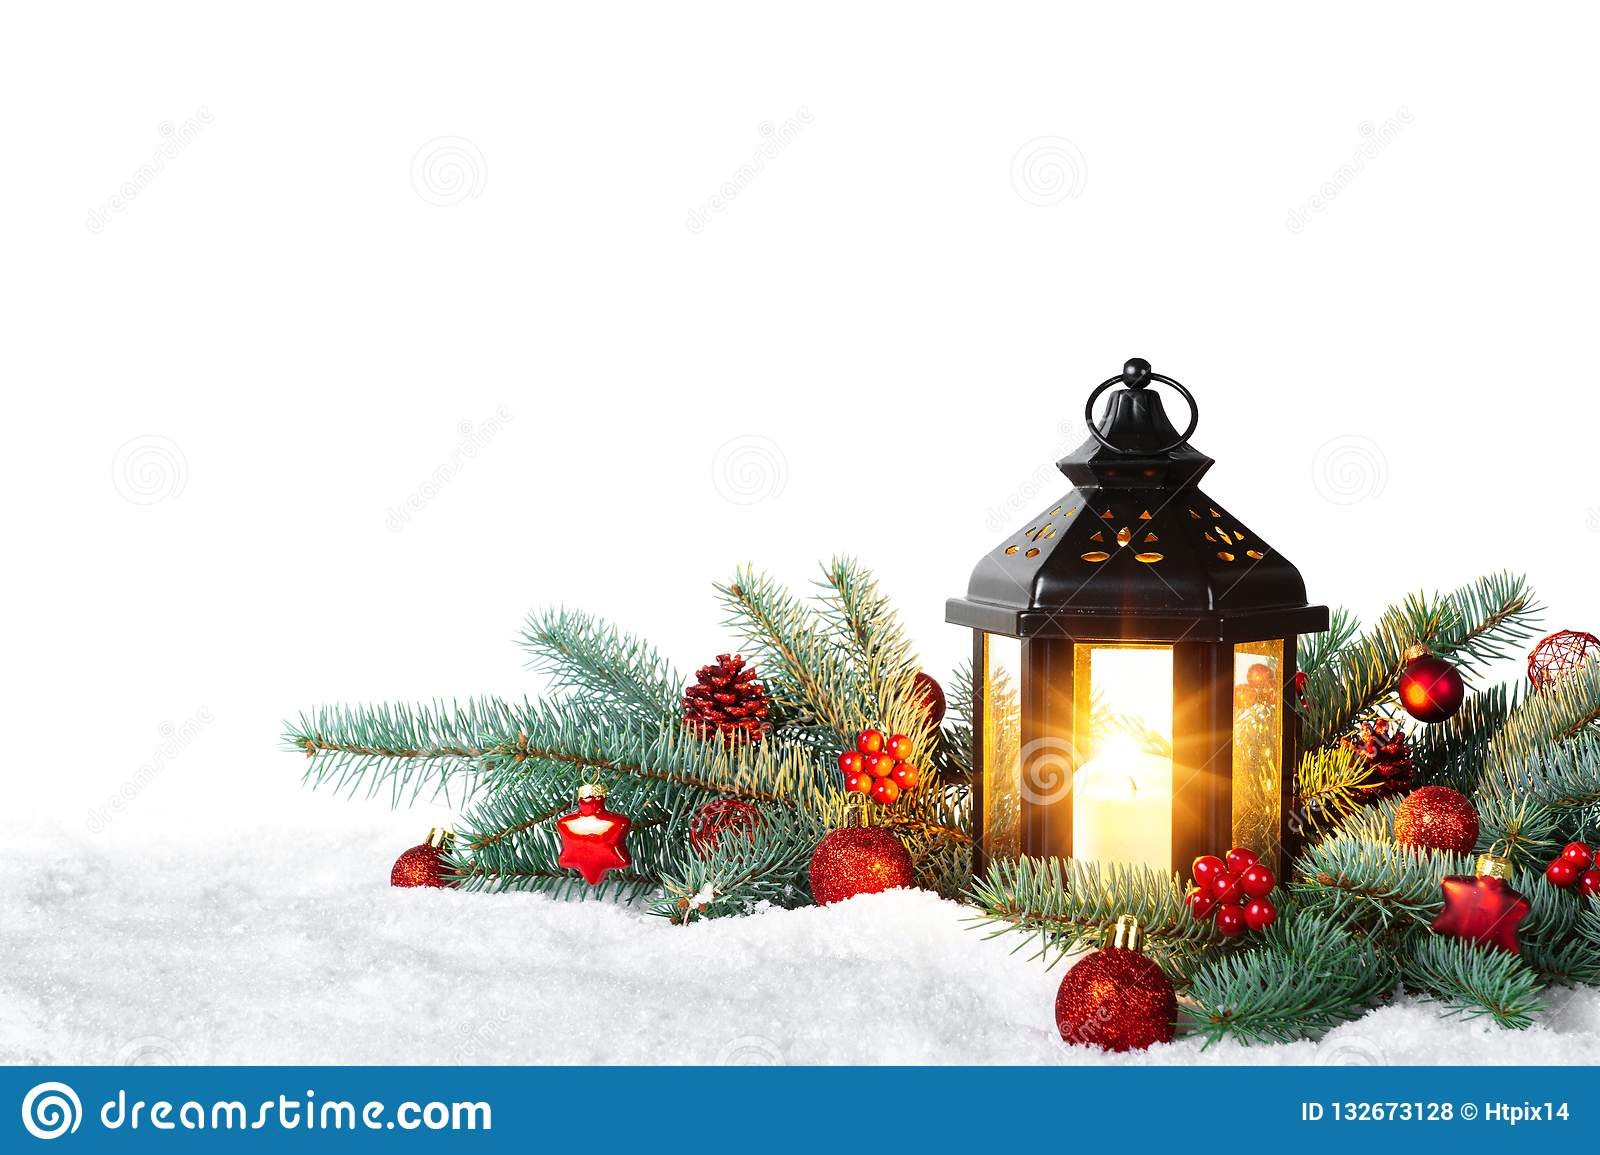 Christmas Lantern.Christmas Lantern On Snow With Fir Branch Isolated On White